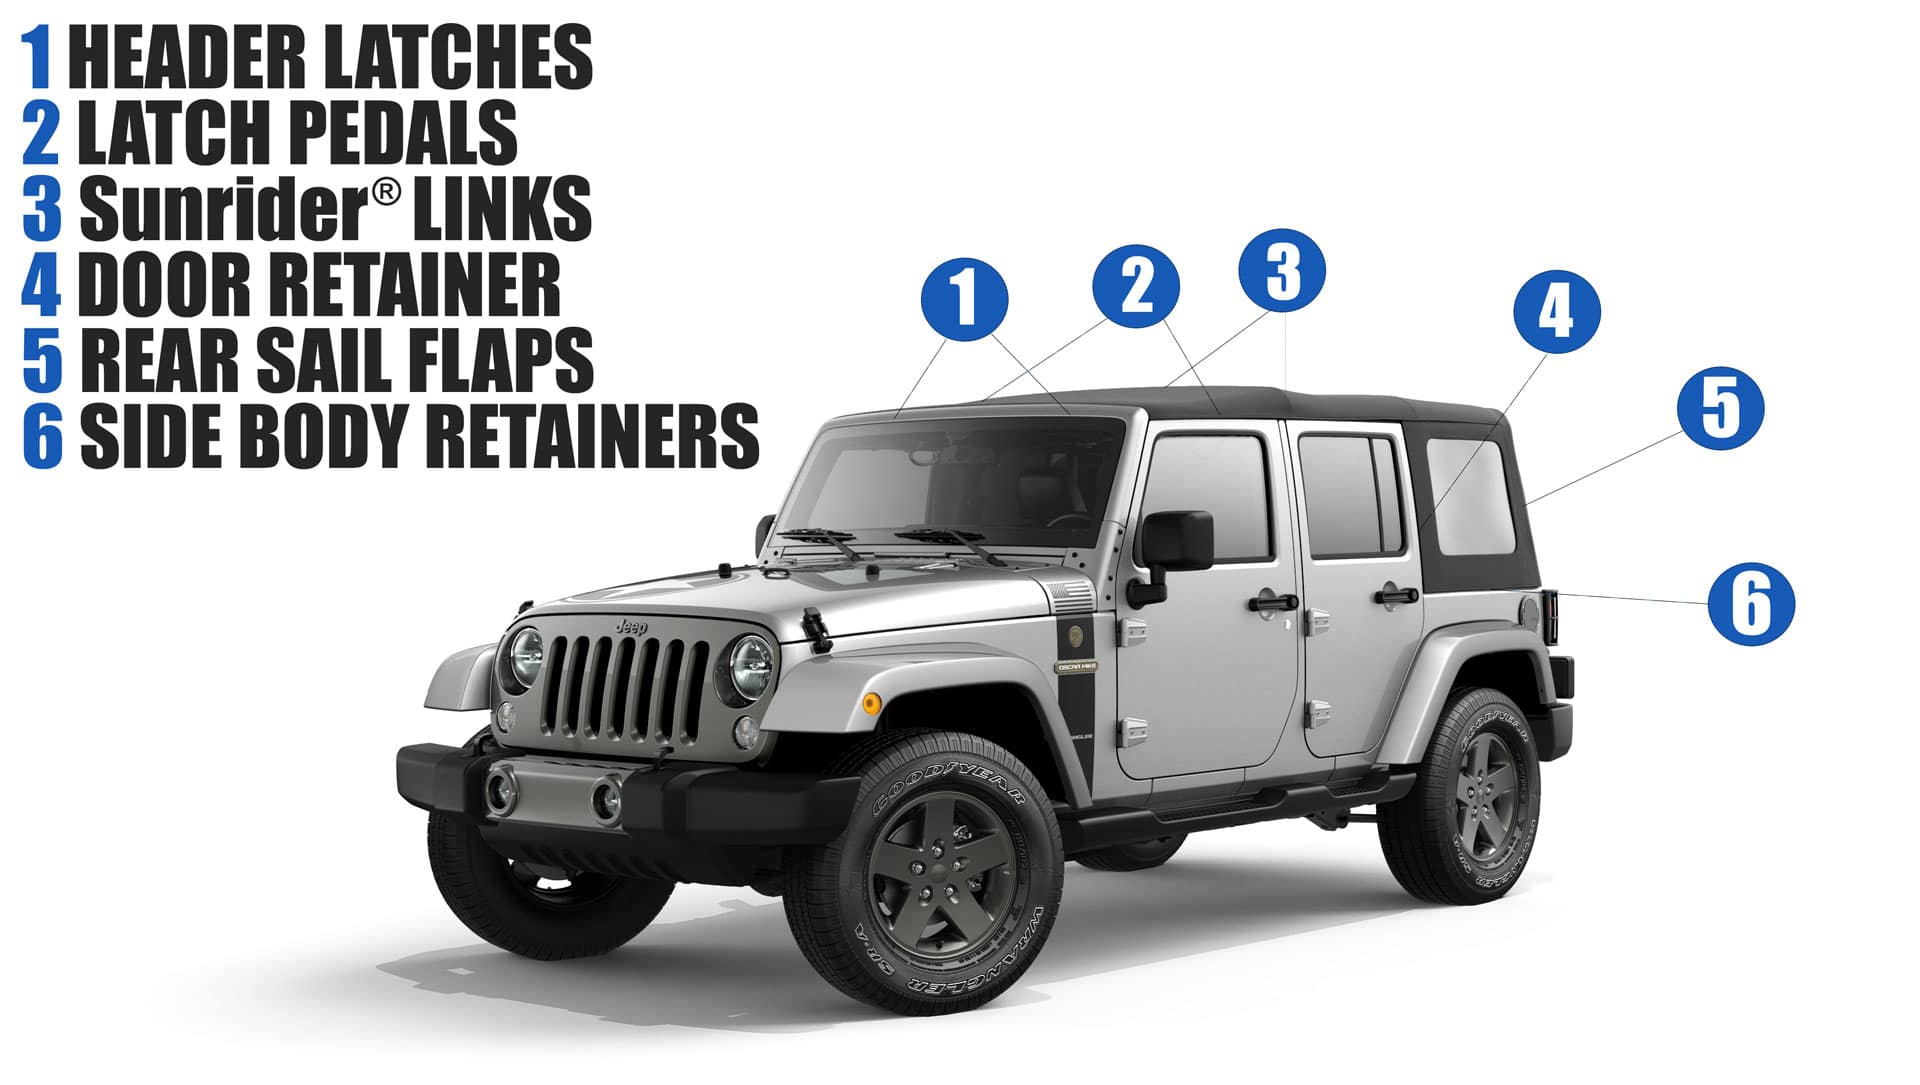 Remove the soft top on Jeep Wrangler faqs